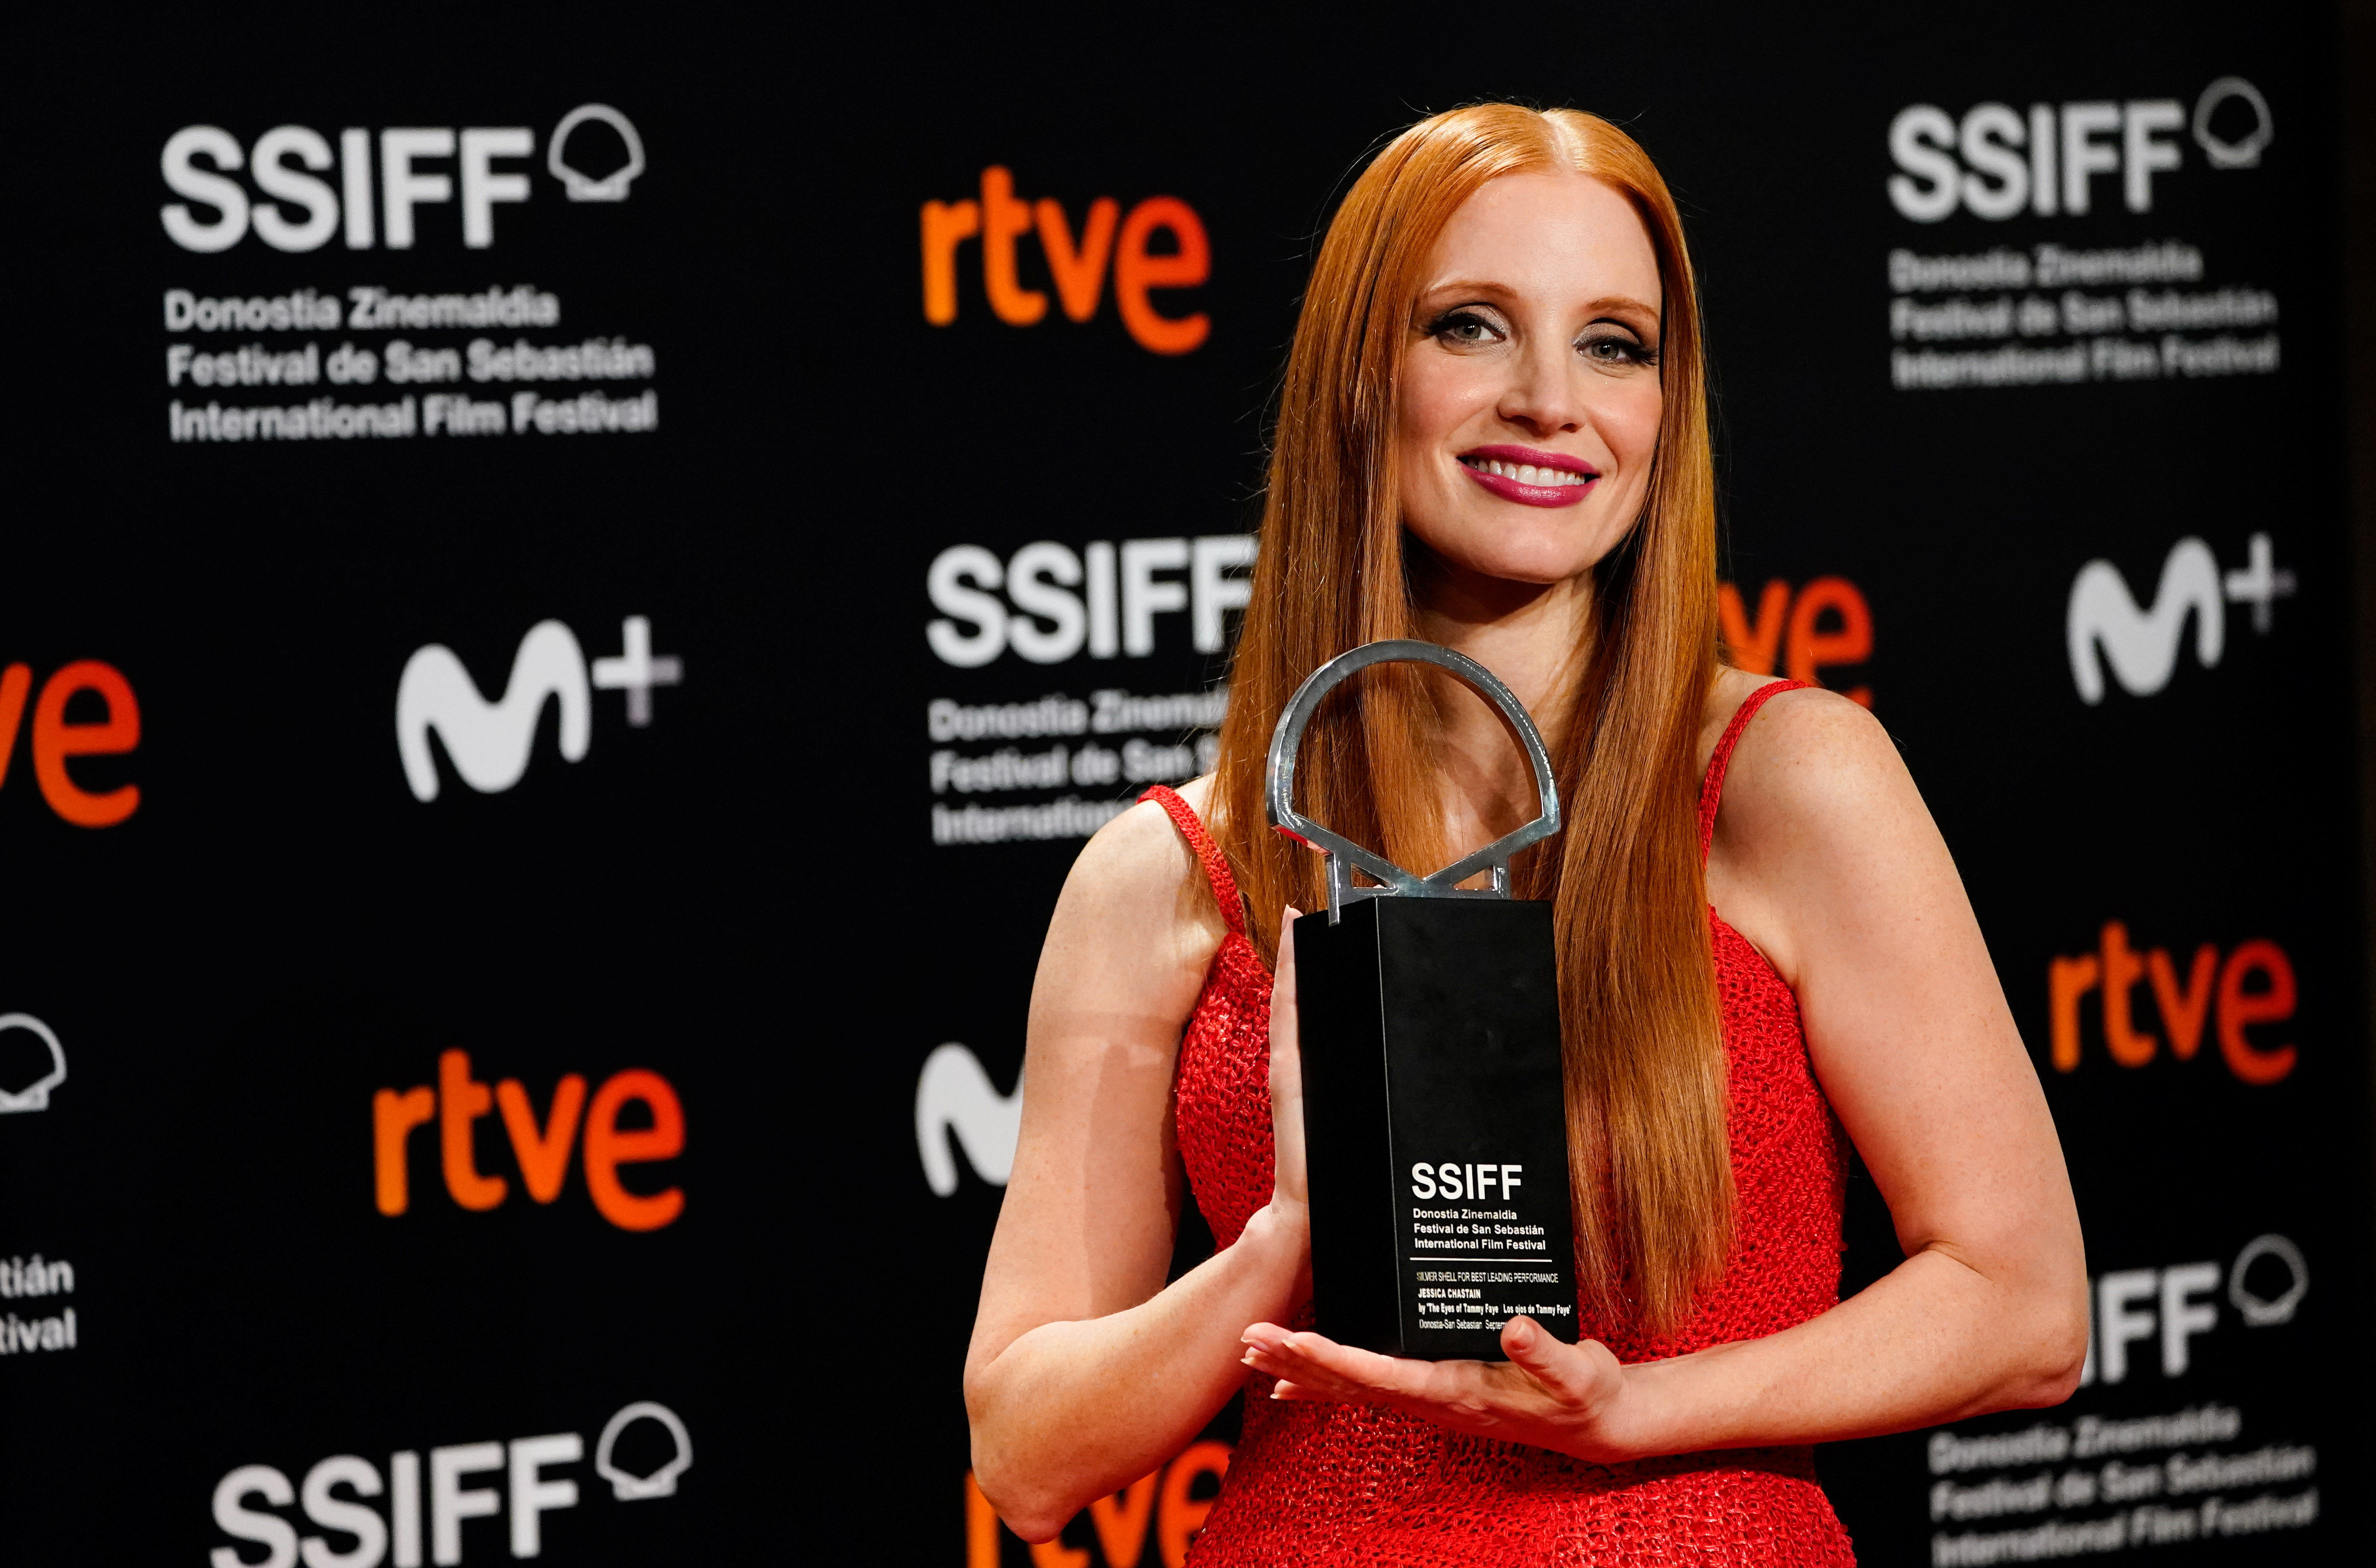 Actor Jessica Chastain, who won the award for best actor in the feature film